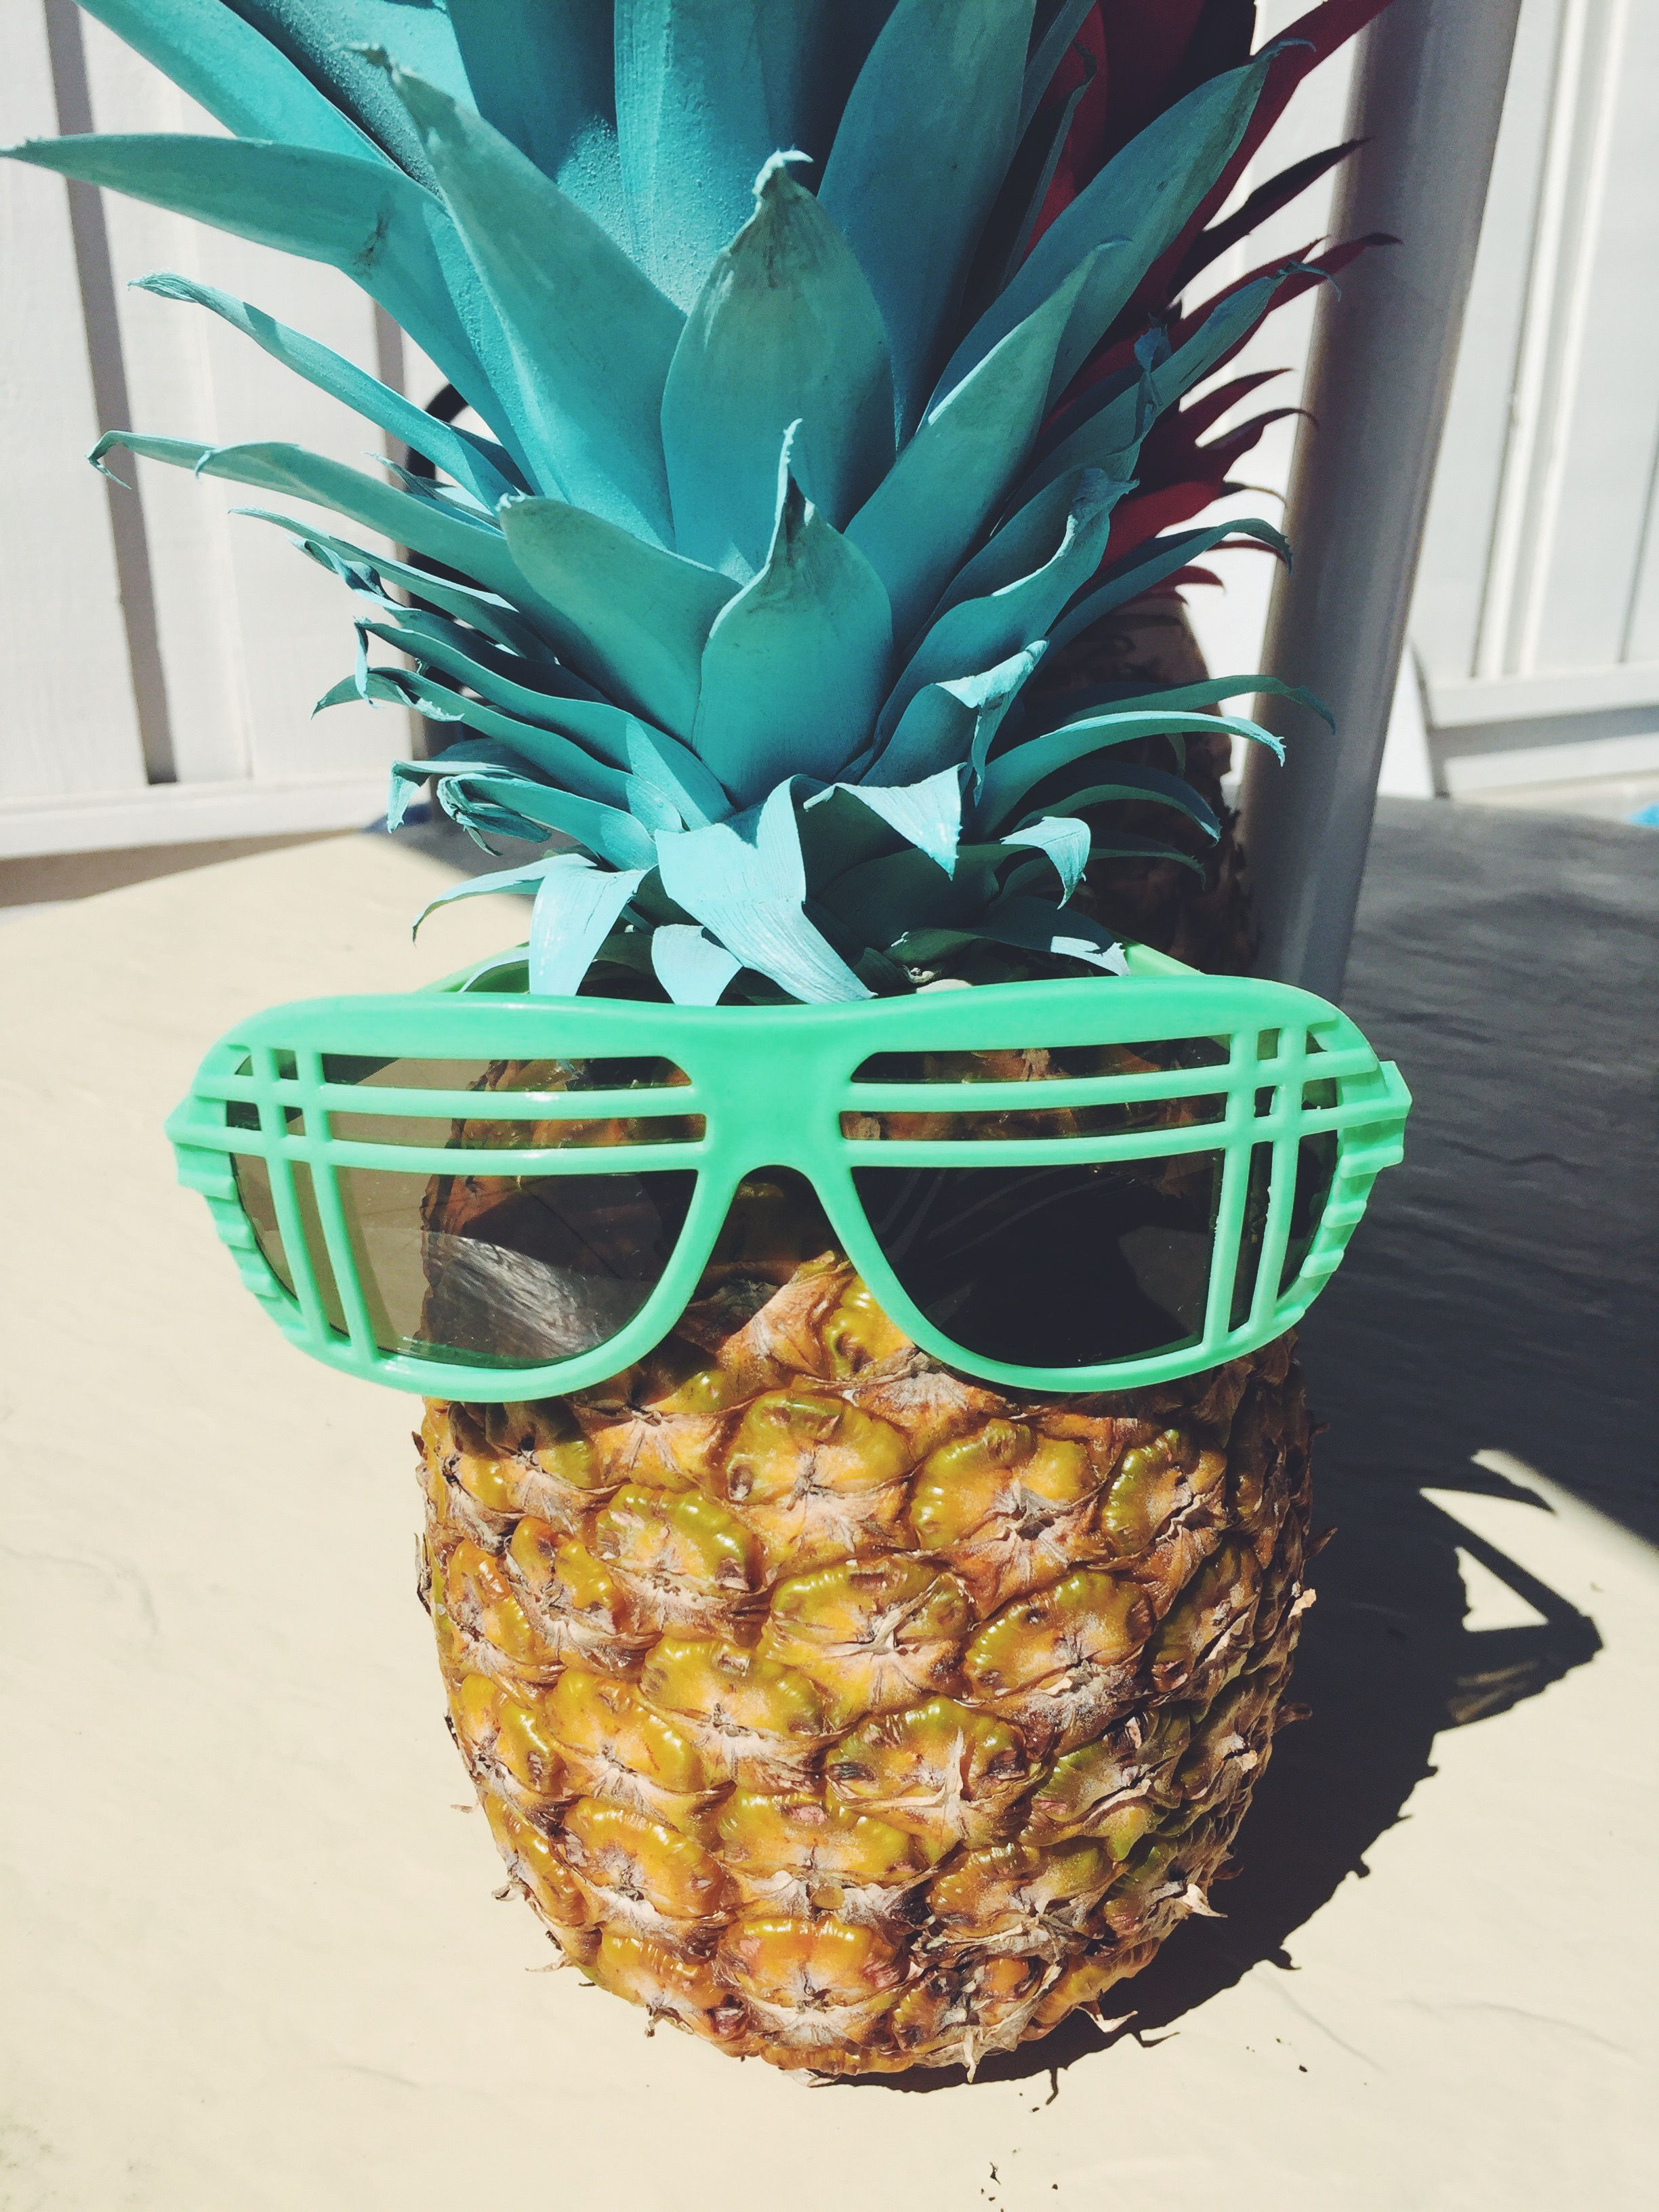 Pineapple party came to life by spray painting the tops of the pineapples different colors and adorning them with cool sunglasses.